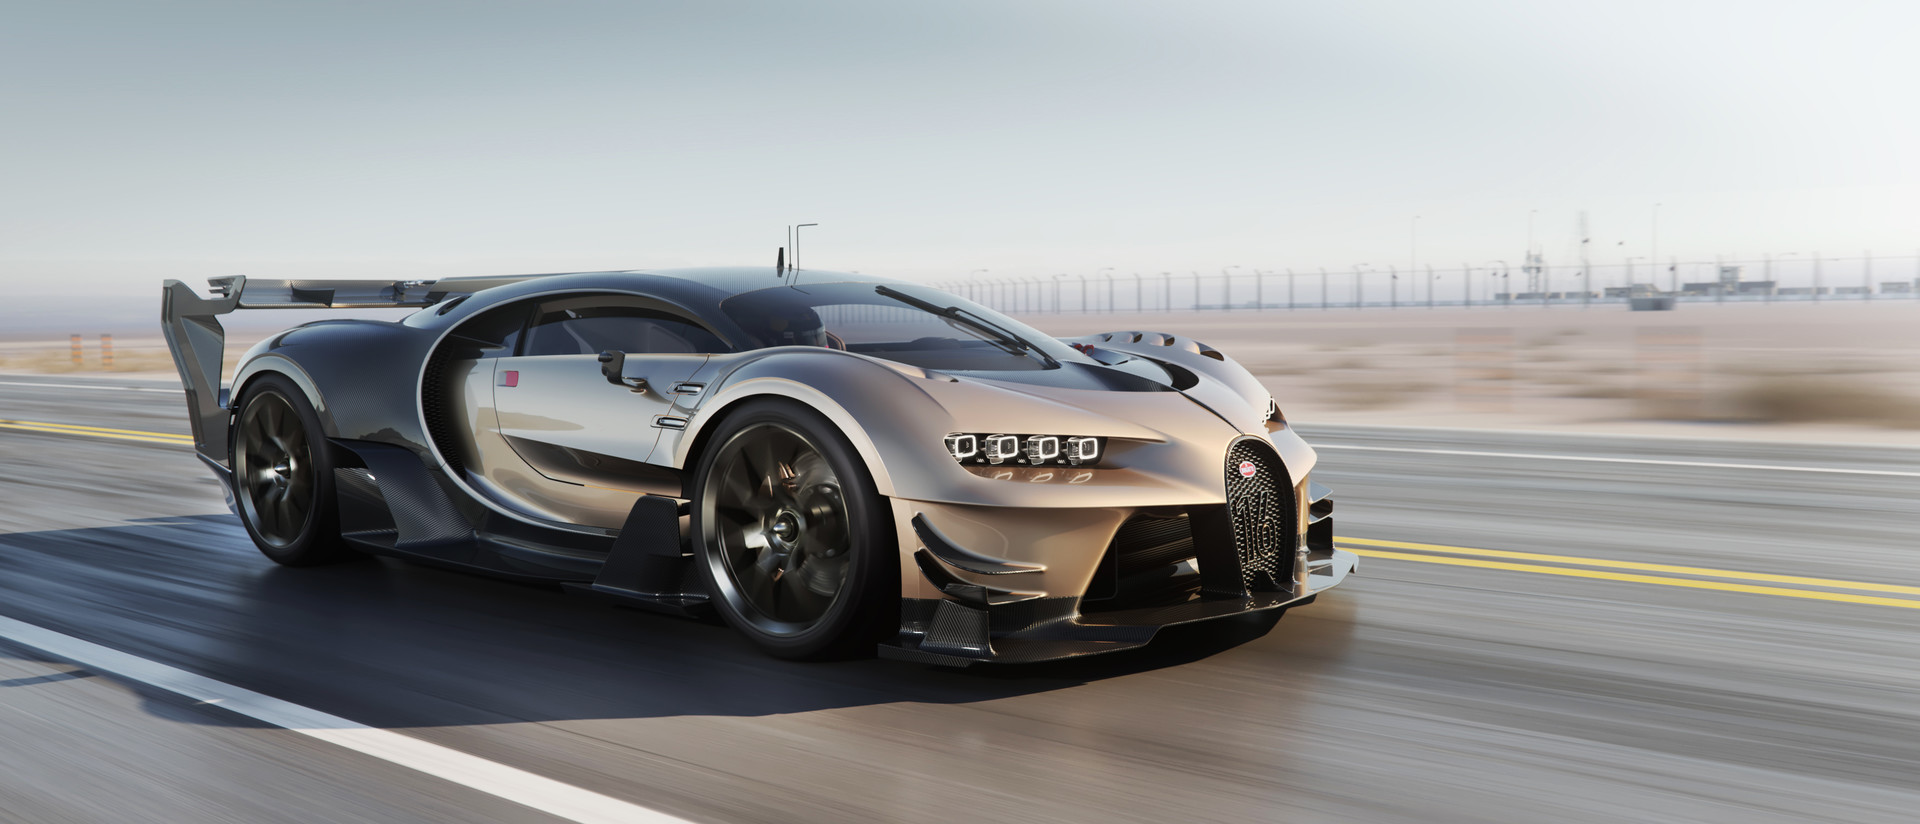 bugatti gt vision with X0og2 on Bugatti Chiron Vision Gran Turismo Prix Achat 1507179 further 2018 vision mercedes maybach 6 cabriolet 2 4k Wallpapers together with Mercedes Benz Vision Eq Silver Arrow An Insight Into Future Designs moreover Bugatti Vision Gt 112 further 2016 mansory mercedes amg gt s Wallpapers.